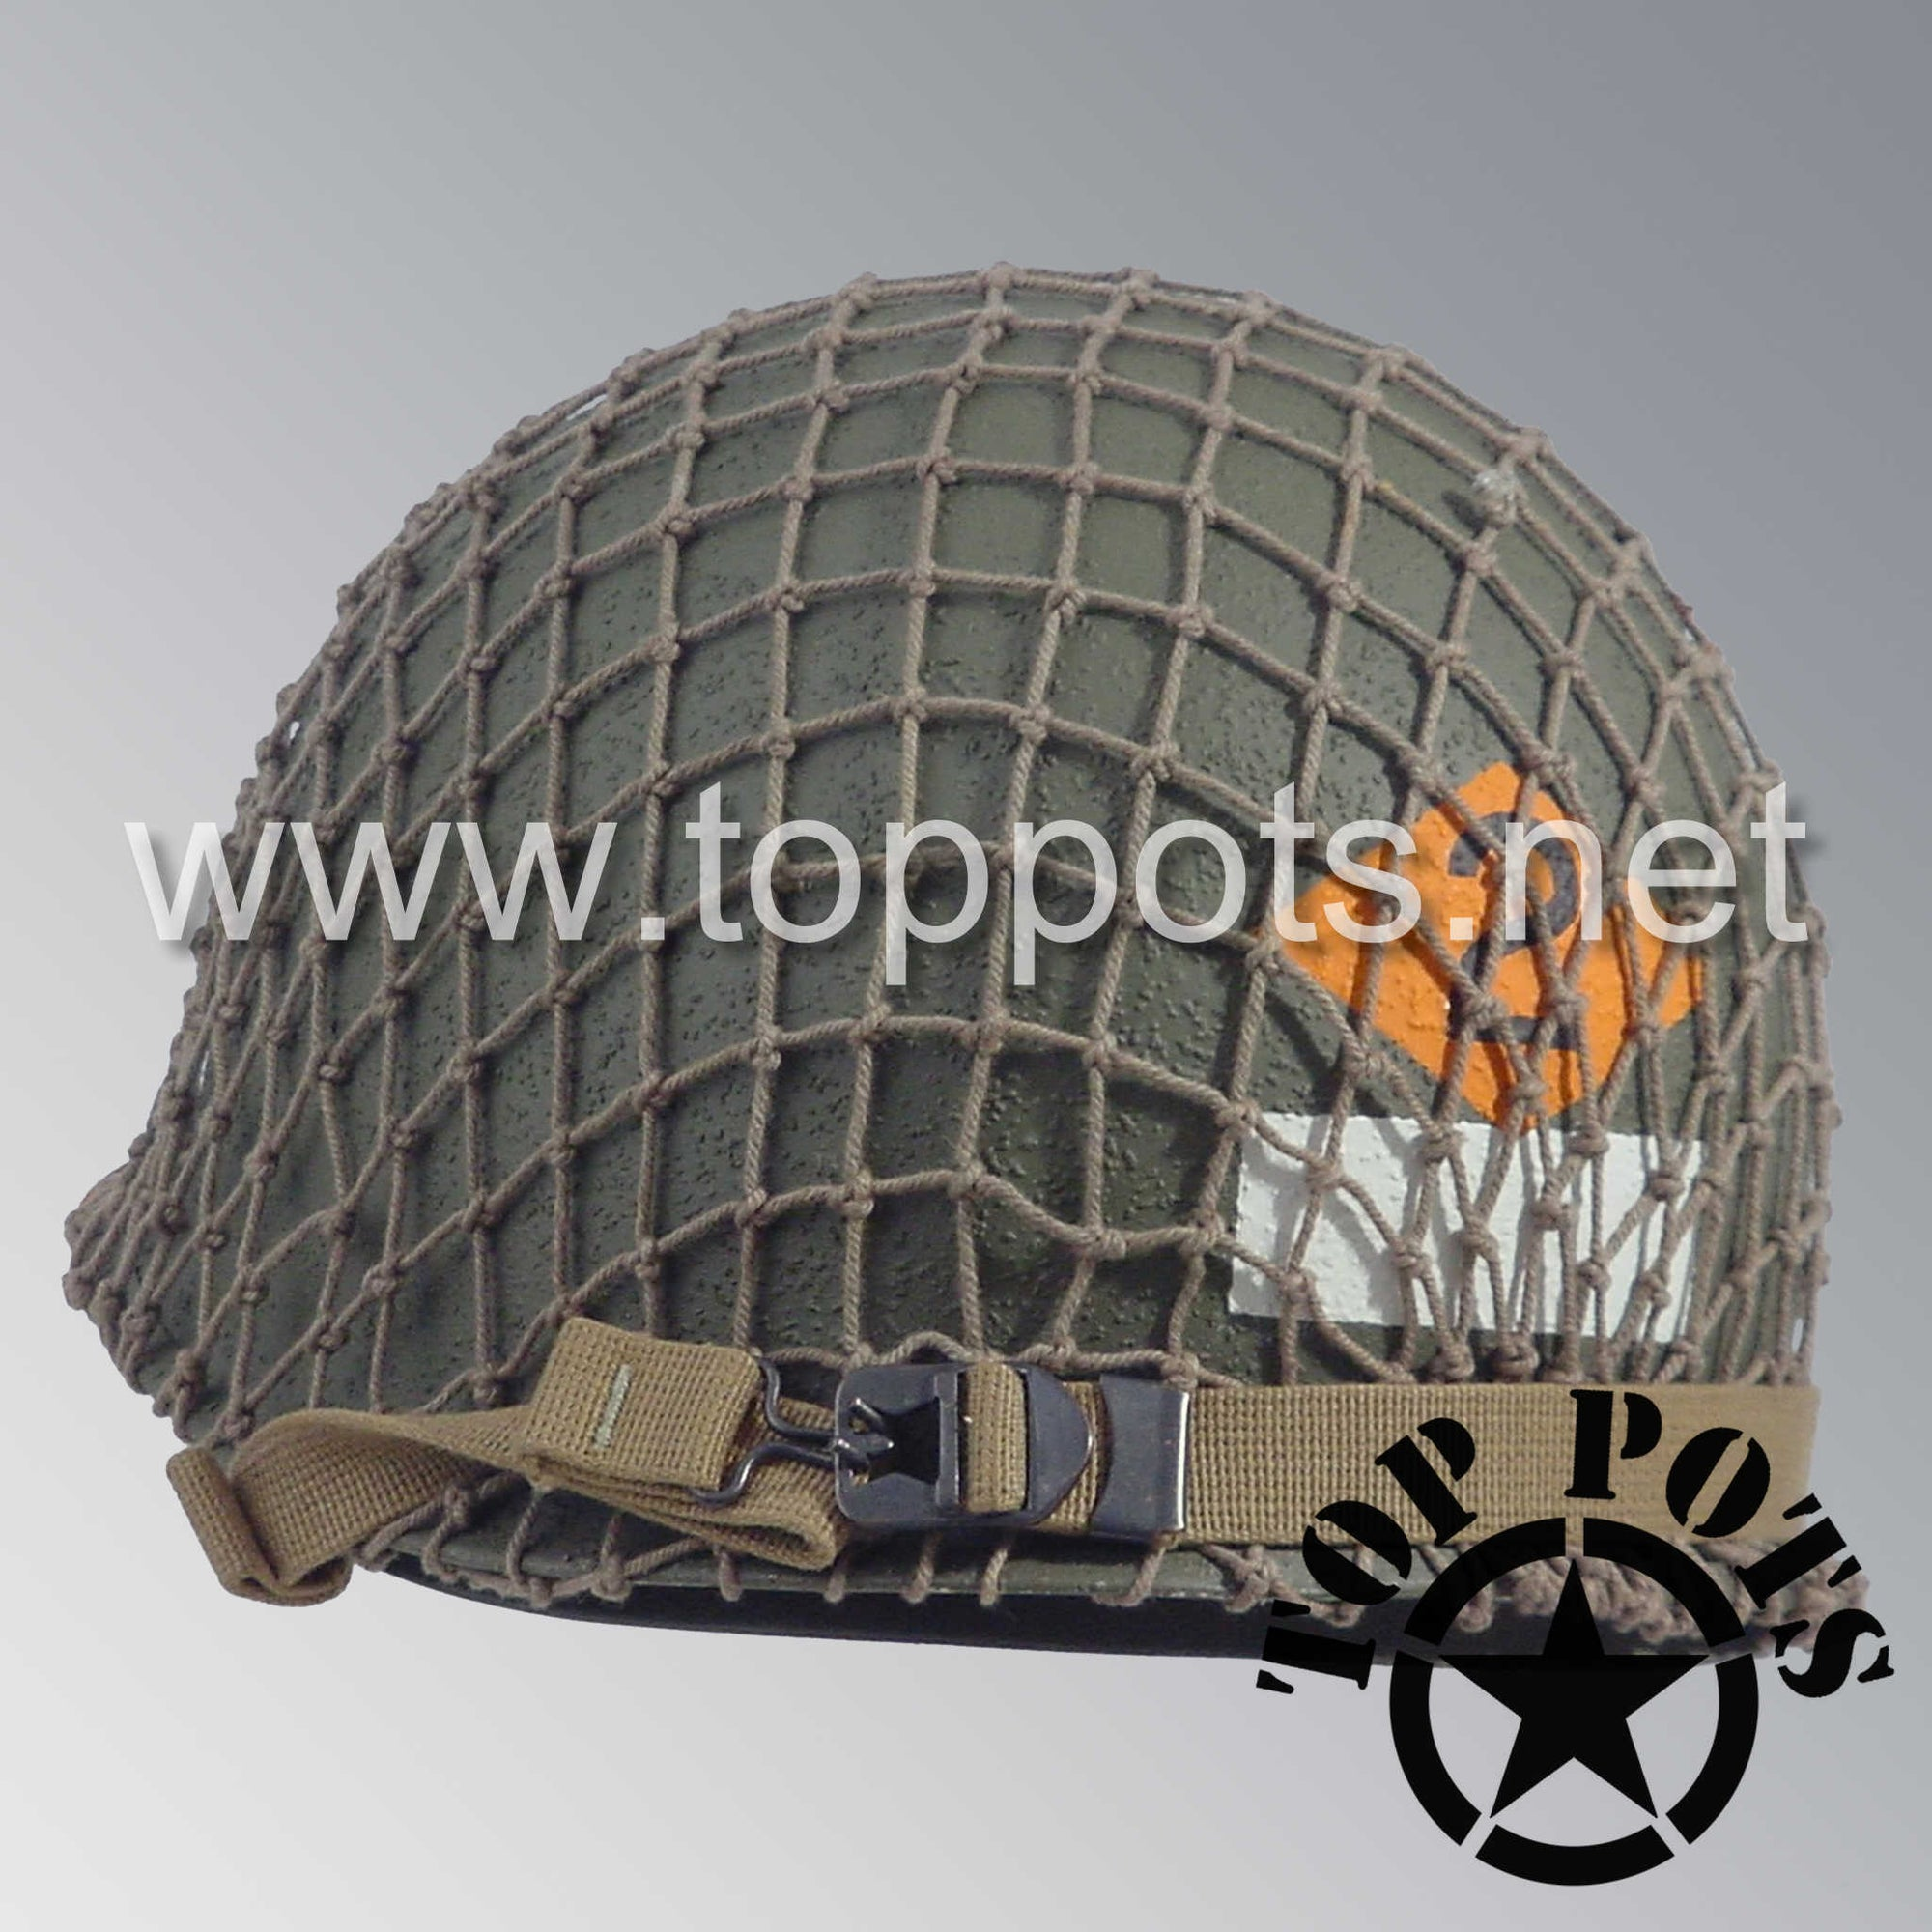 Image 5 of WWII US Army Restored Original M1 Infantry Helmet Swivel Bale Shell and Liner with 2nd Ranger NCO Emblem and Khaki Net